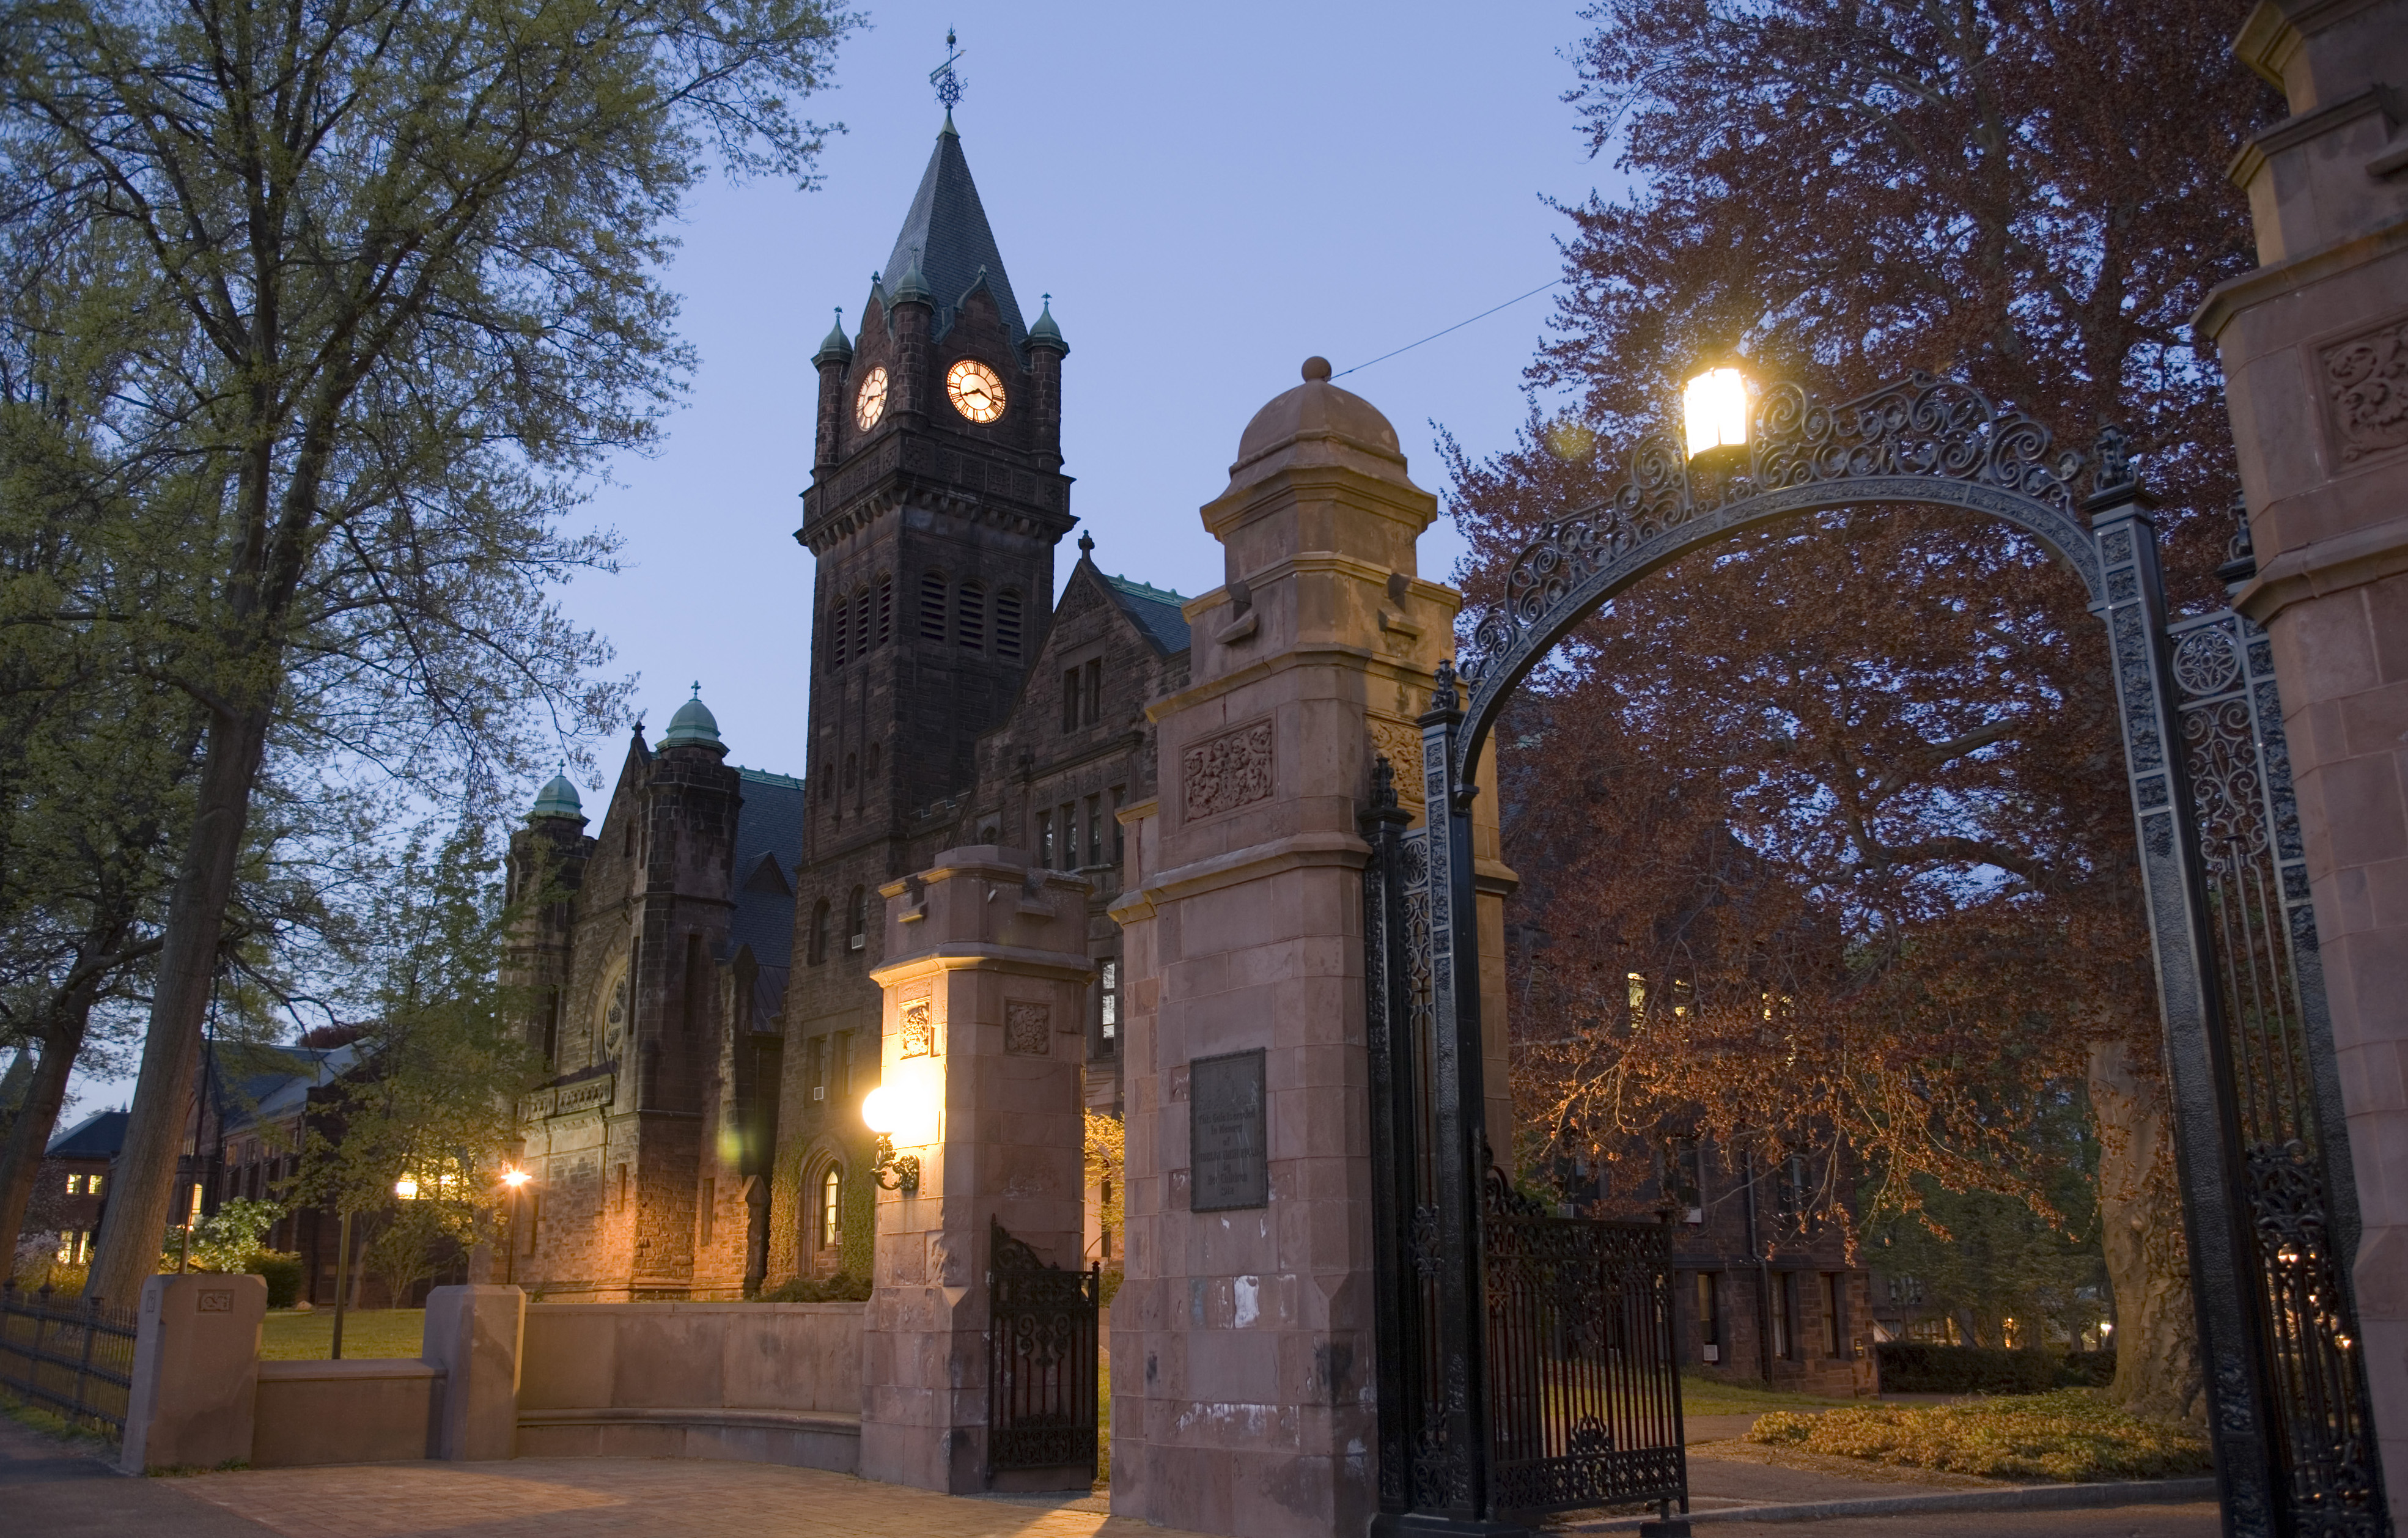 Mary Lyon Hall and the College gates at dusk